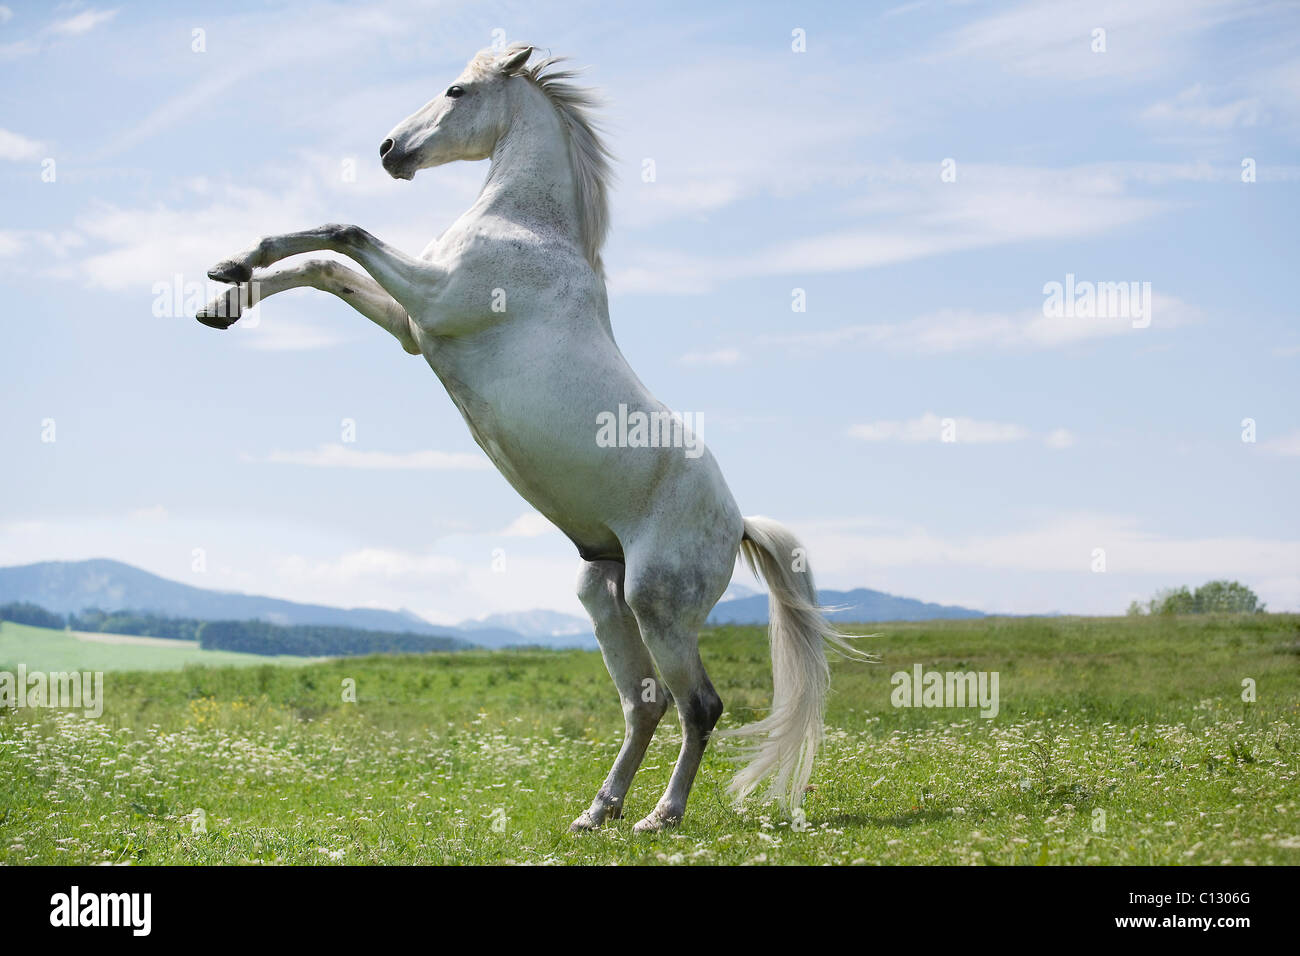 white horse jumping on meadow - Stock Image